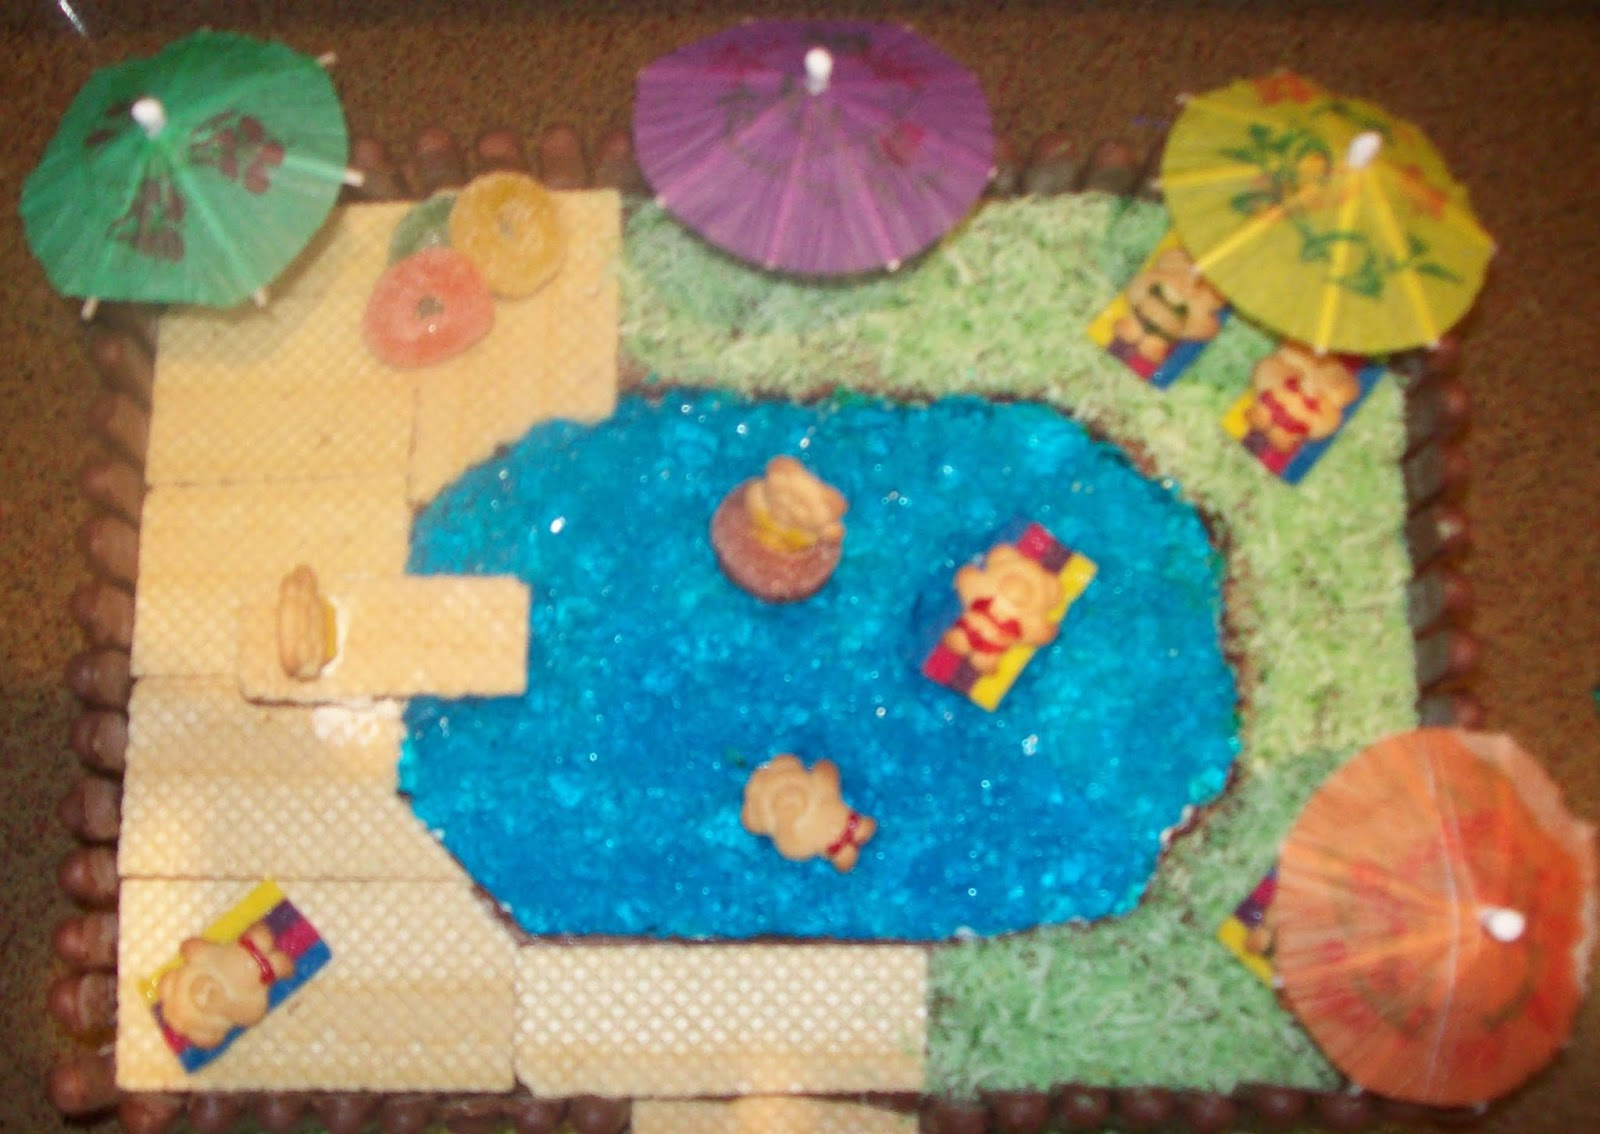 Madnsneaky Built Welcome With Cake A Pool Party And